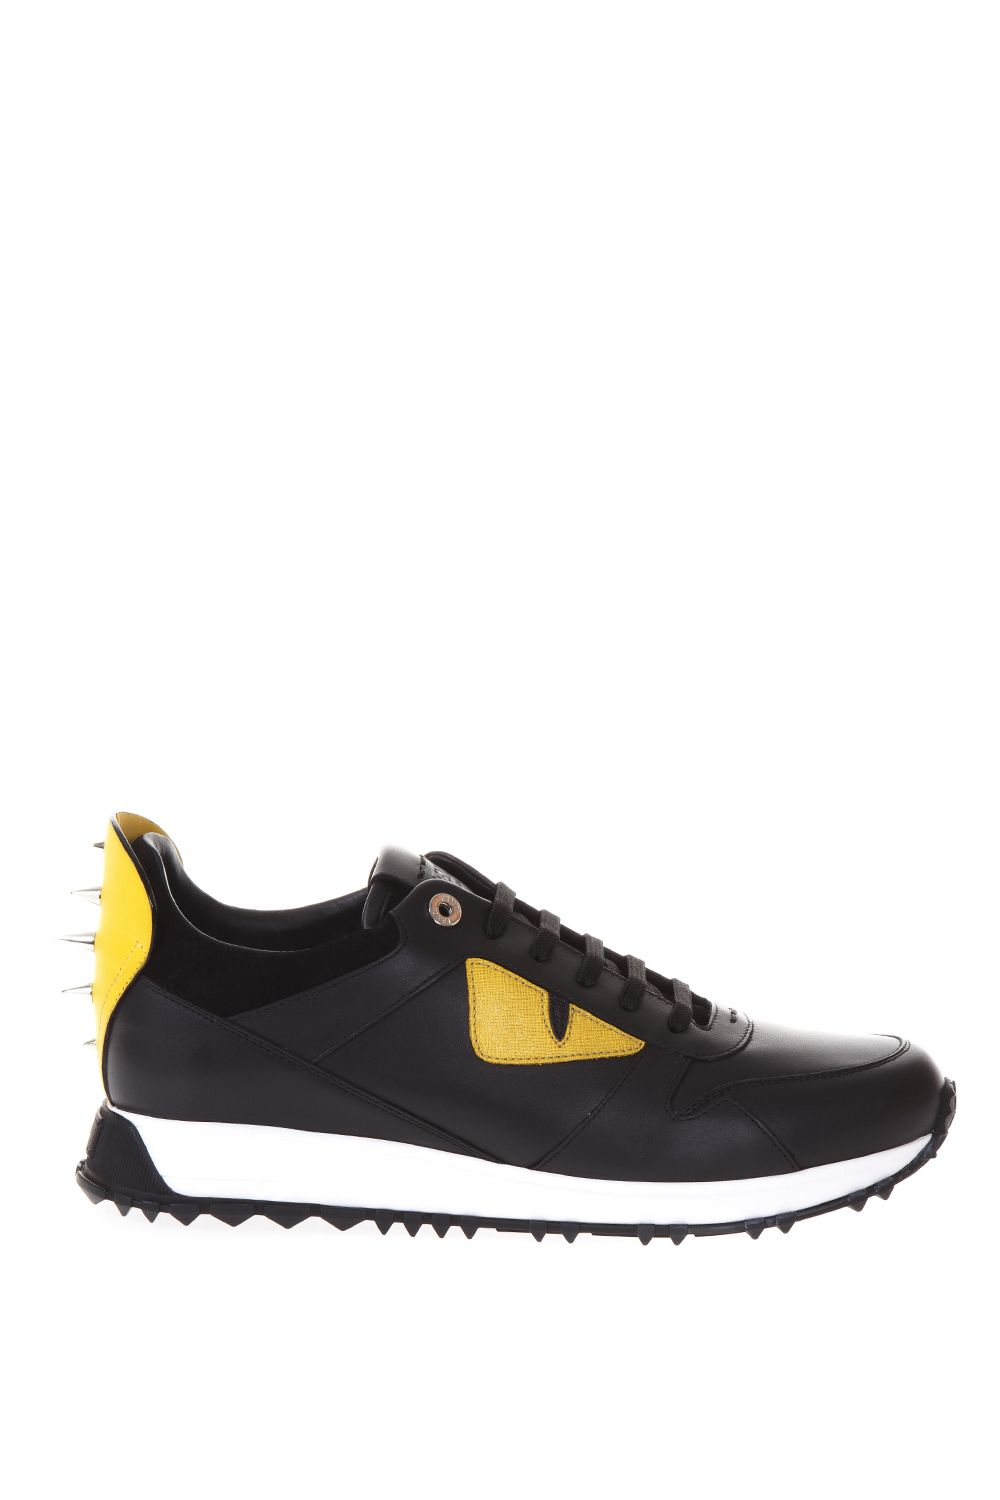 Fendi Bag Bugs Leather Sneakers